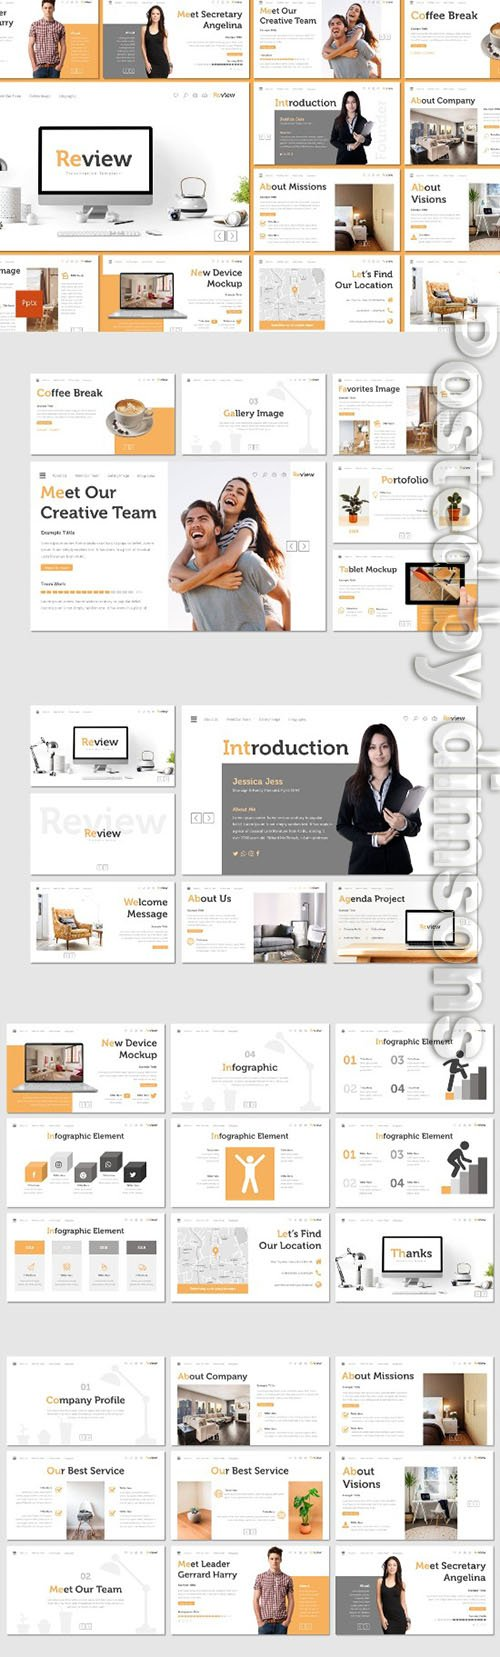 Review - PowerPoint, Keynote and Google Slides Templates